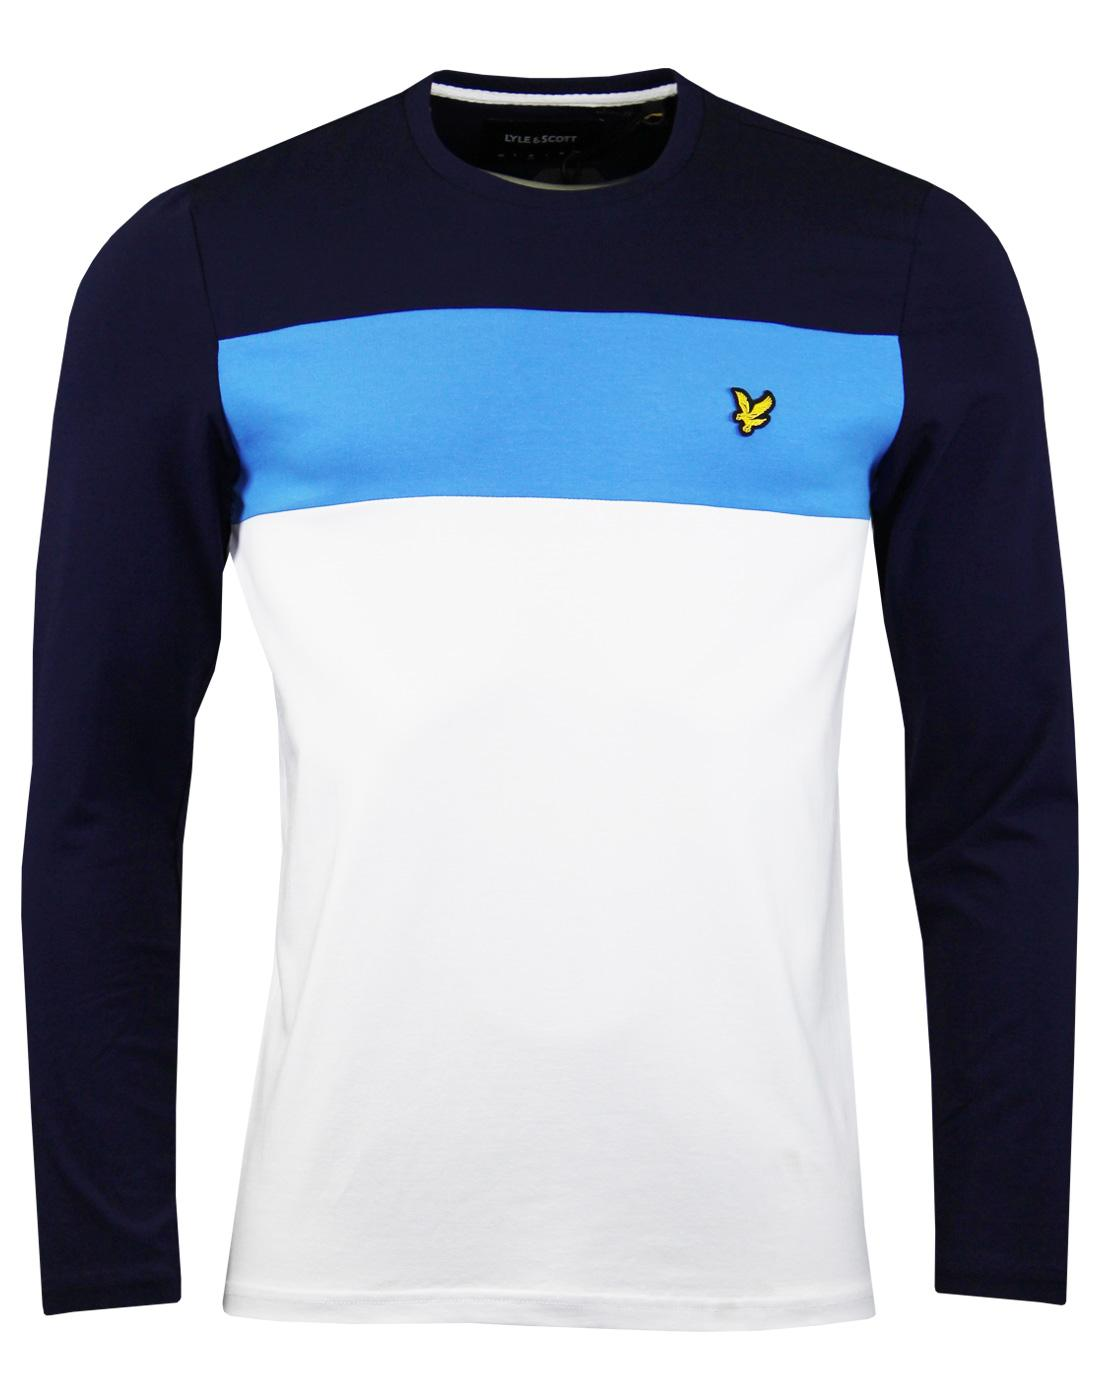 LYLE & SCOTT Retro 80s Colour Block LS T-shirt (W)